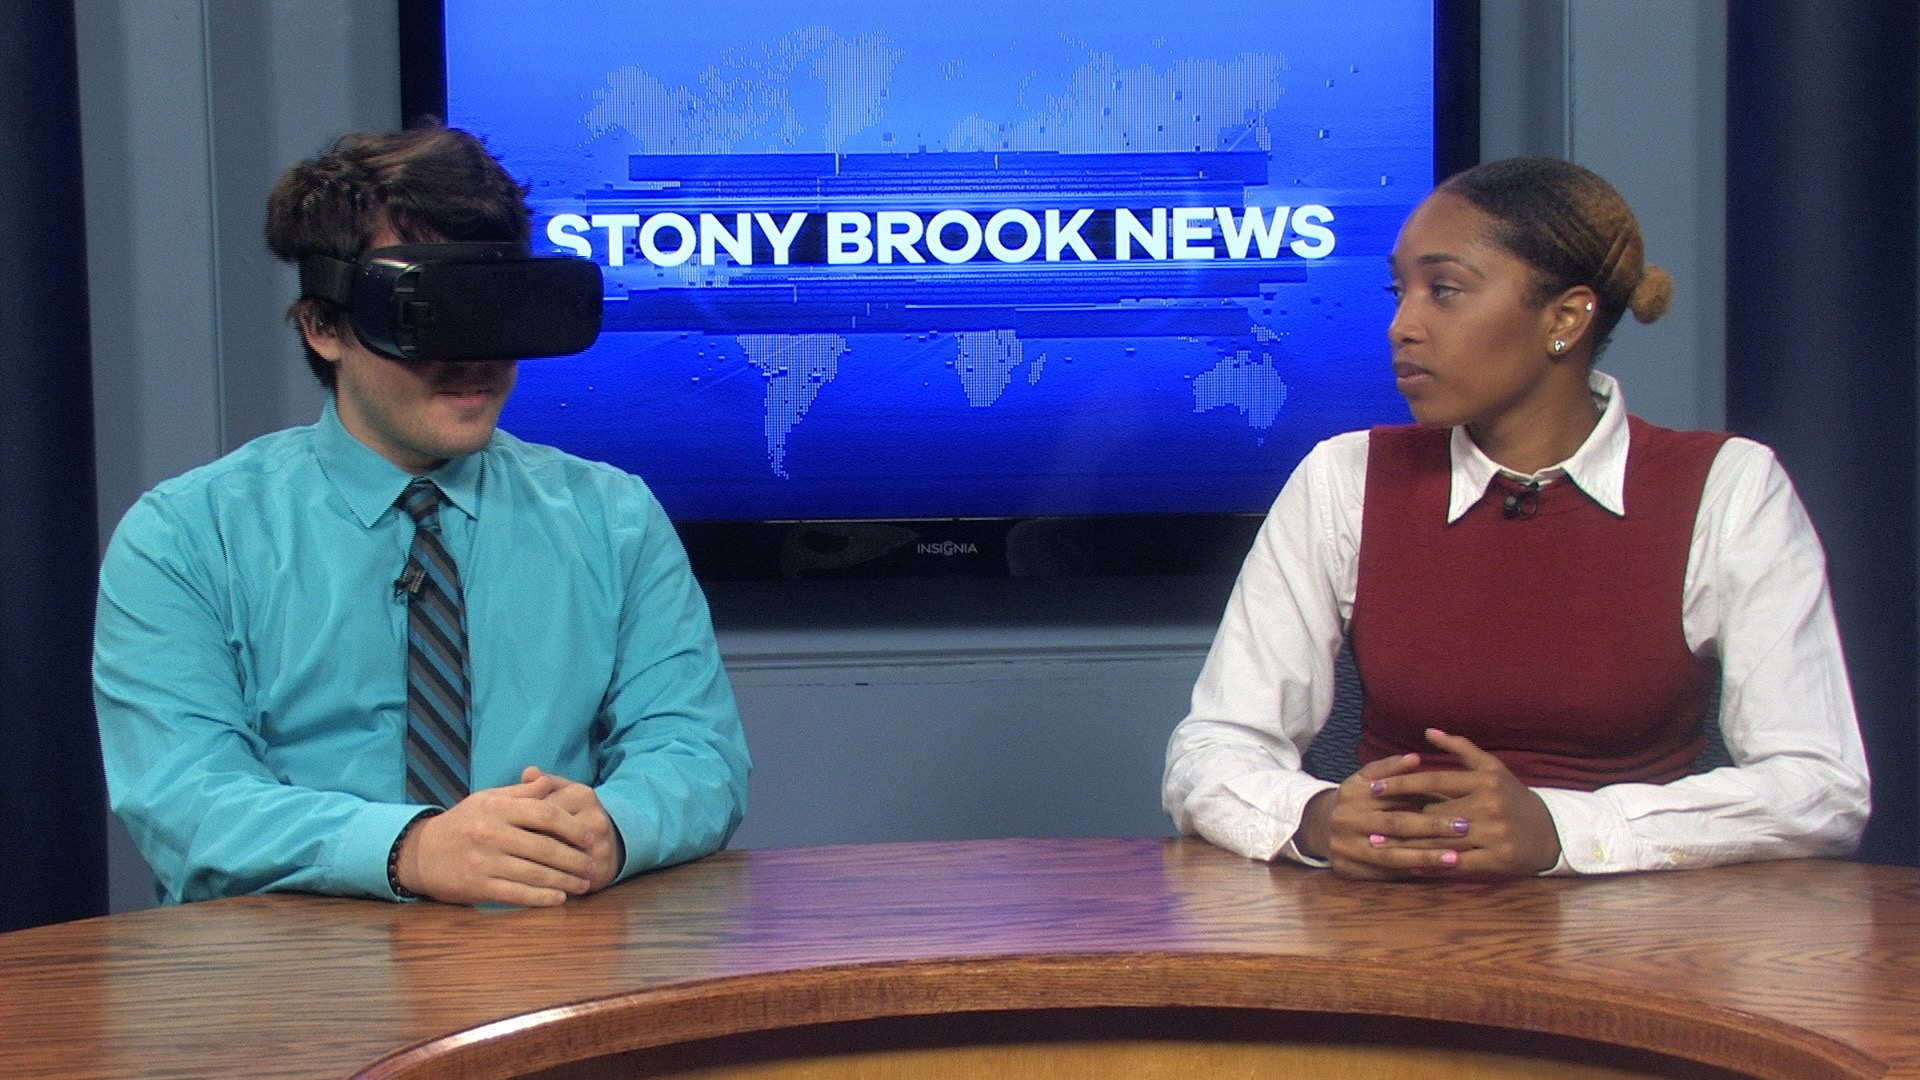 Stony Brook News – October 1, 2018